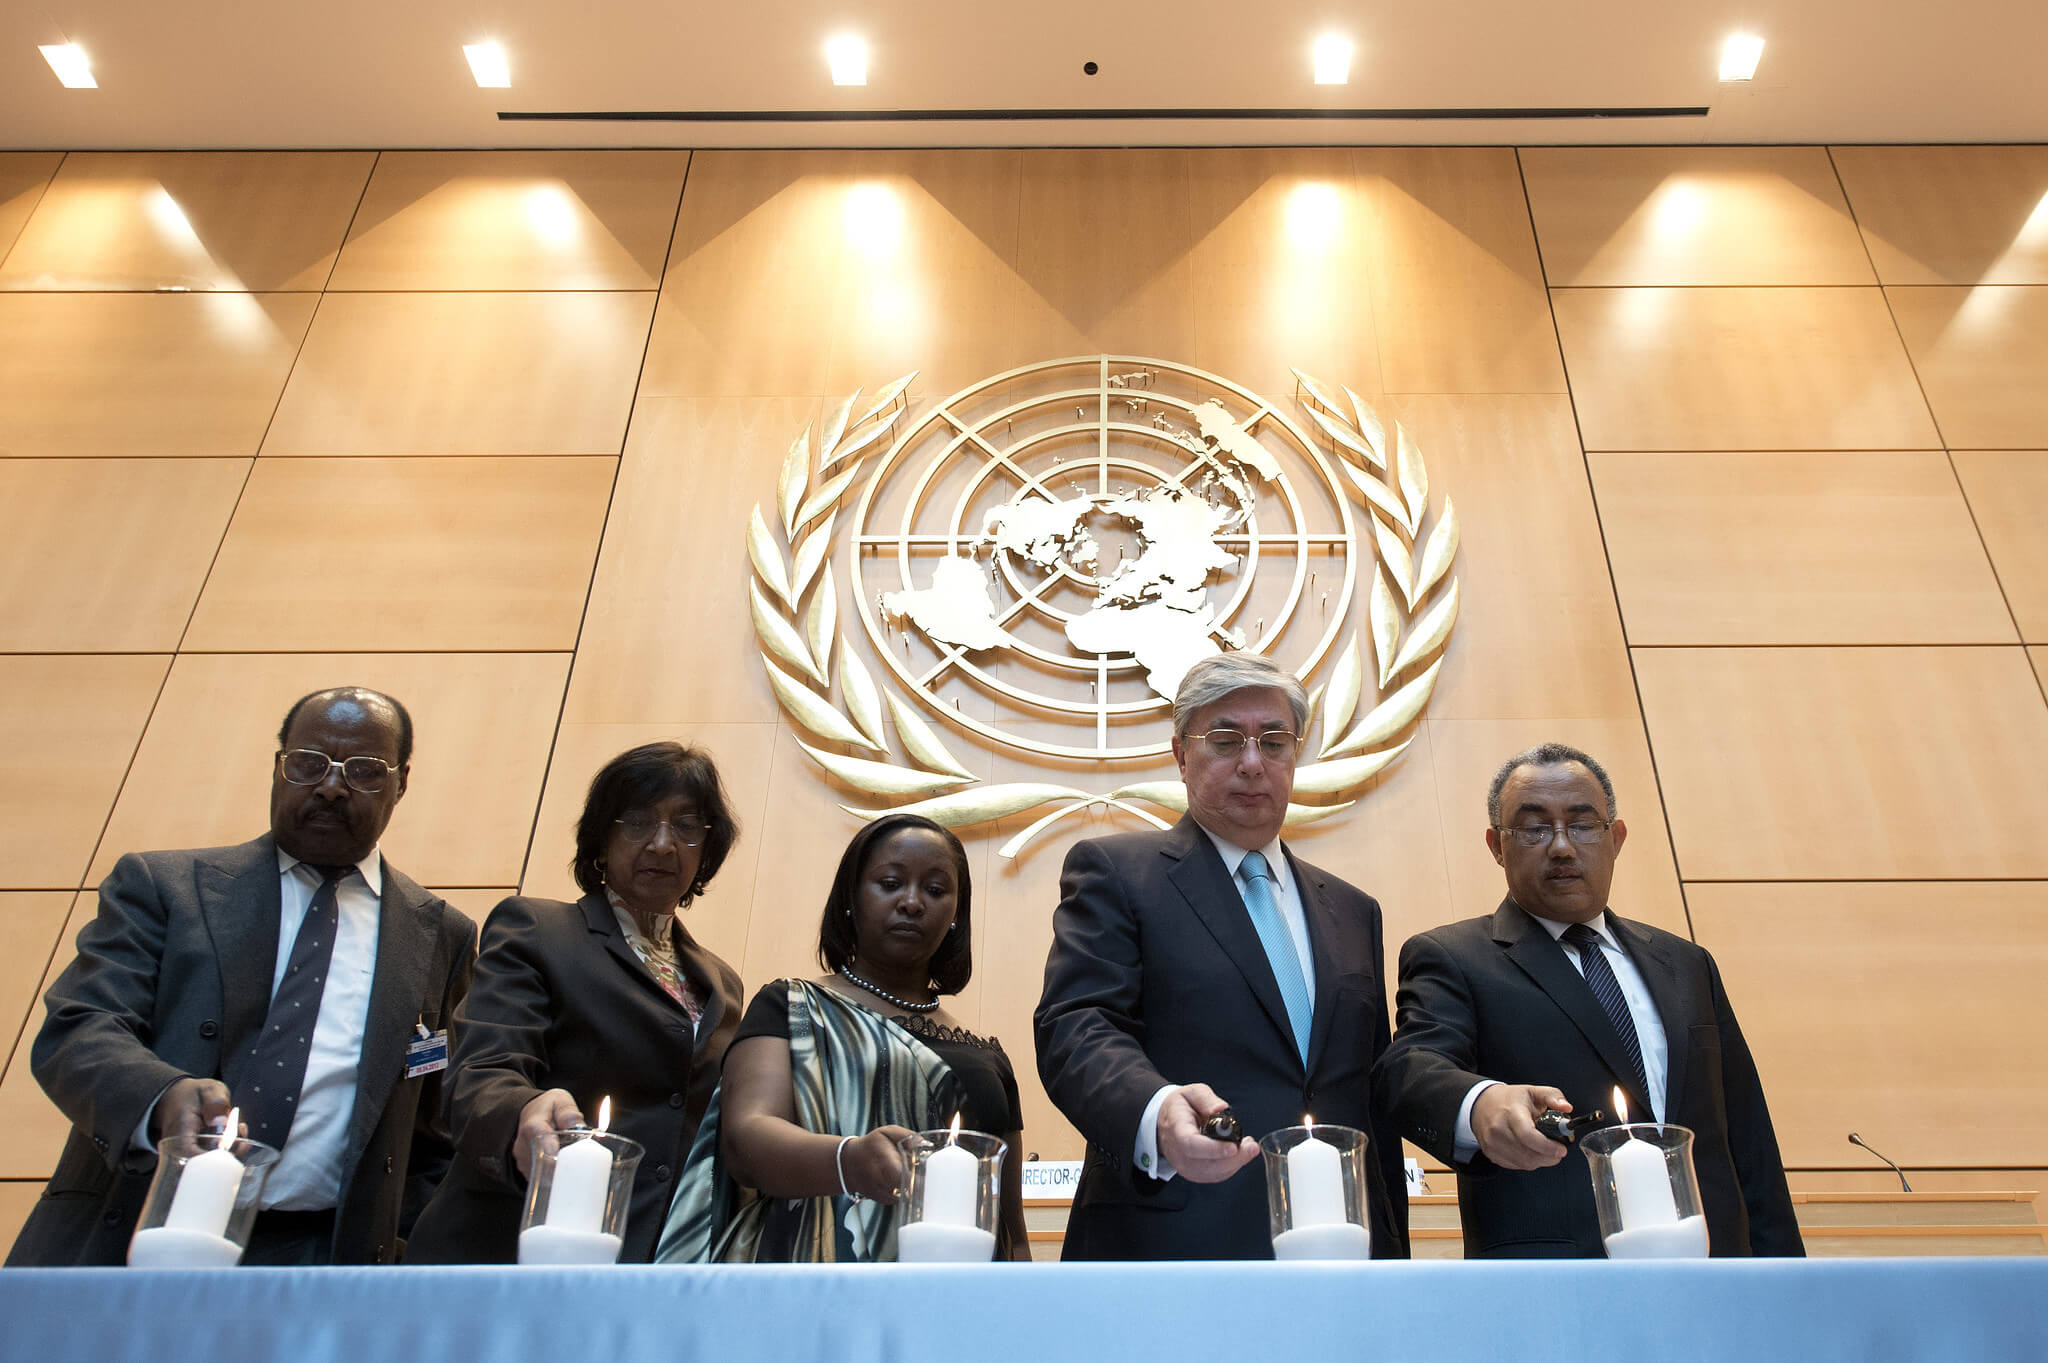 Officials light memorial candles during an event held at the UN Office in Geneva (UNOG) in April 2013 to mark the International Day of Reflection on the 1994 Genocide in Rwanda - United Nations Photo